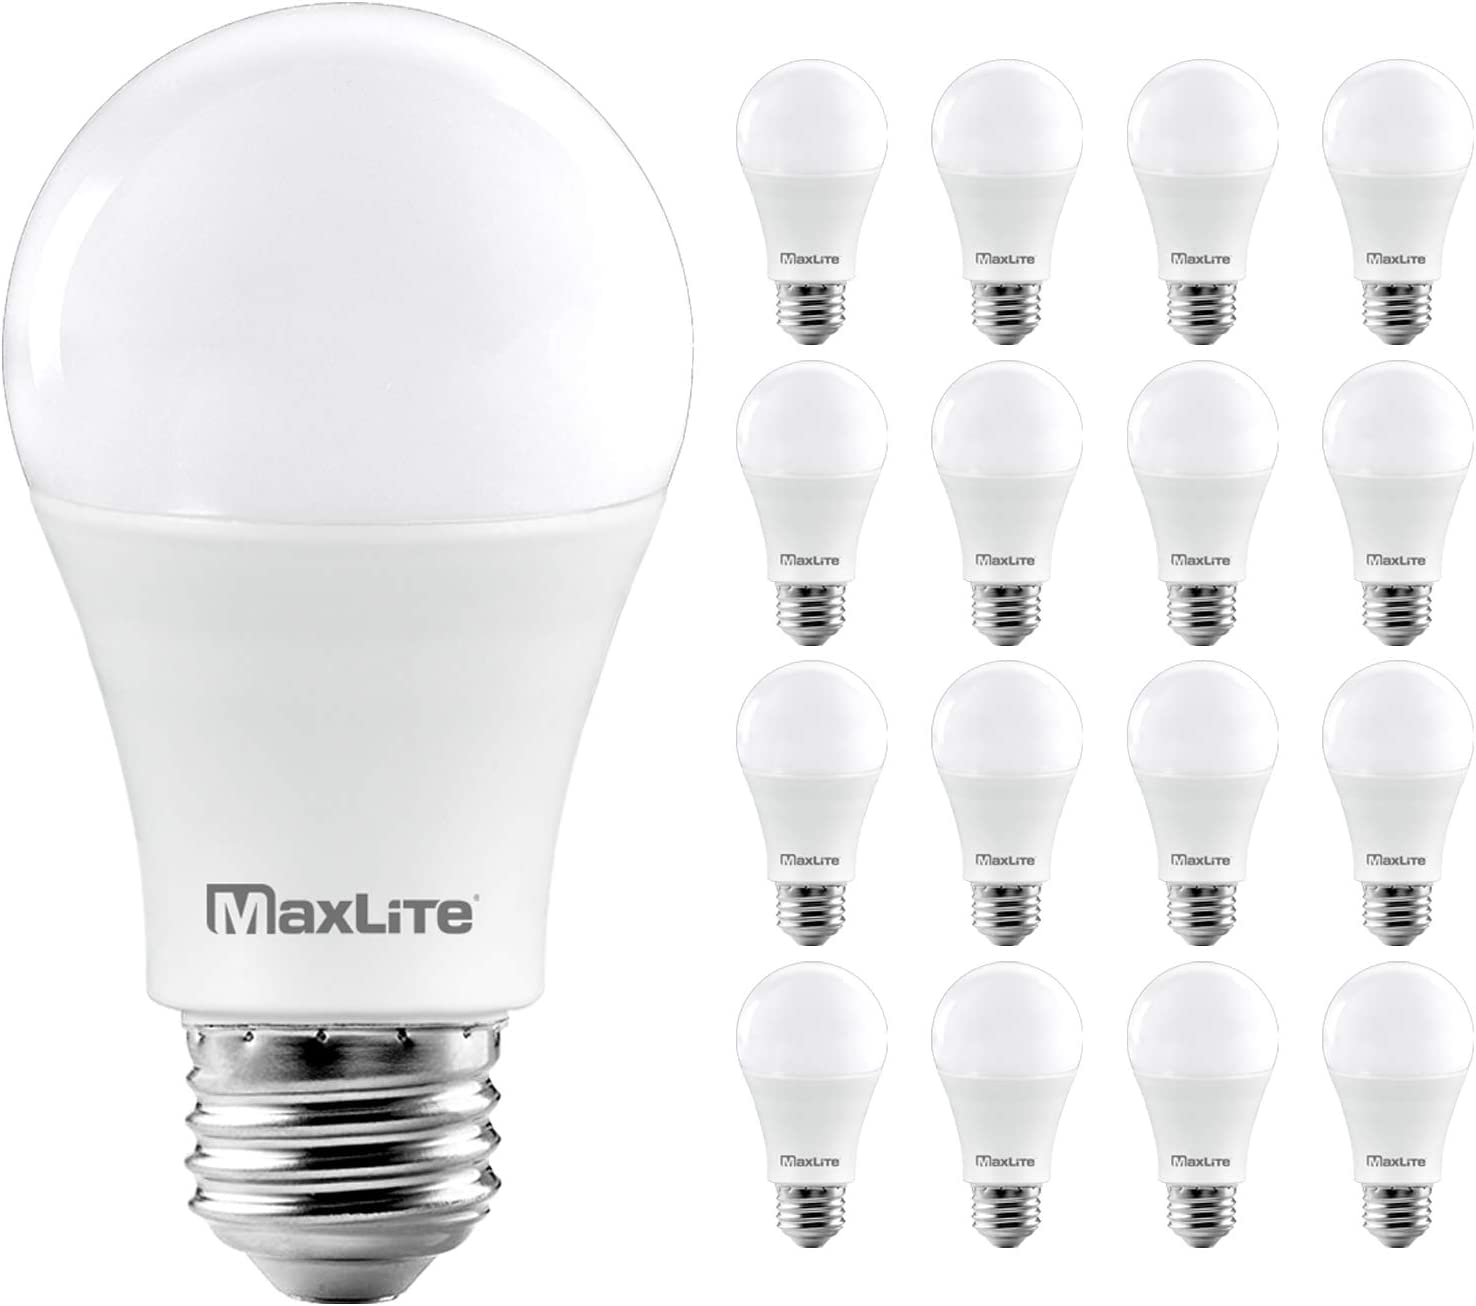 Maxlite A19 Led Bulb Enclosed Fixture Rated Daylight 5000k 100w Equivalent 1600 Lumens Dimmable E26 Medium Base 16 Pack Amazon Com